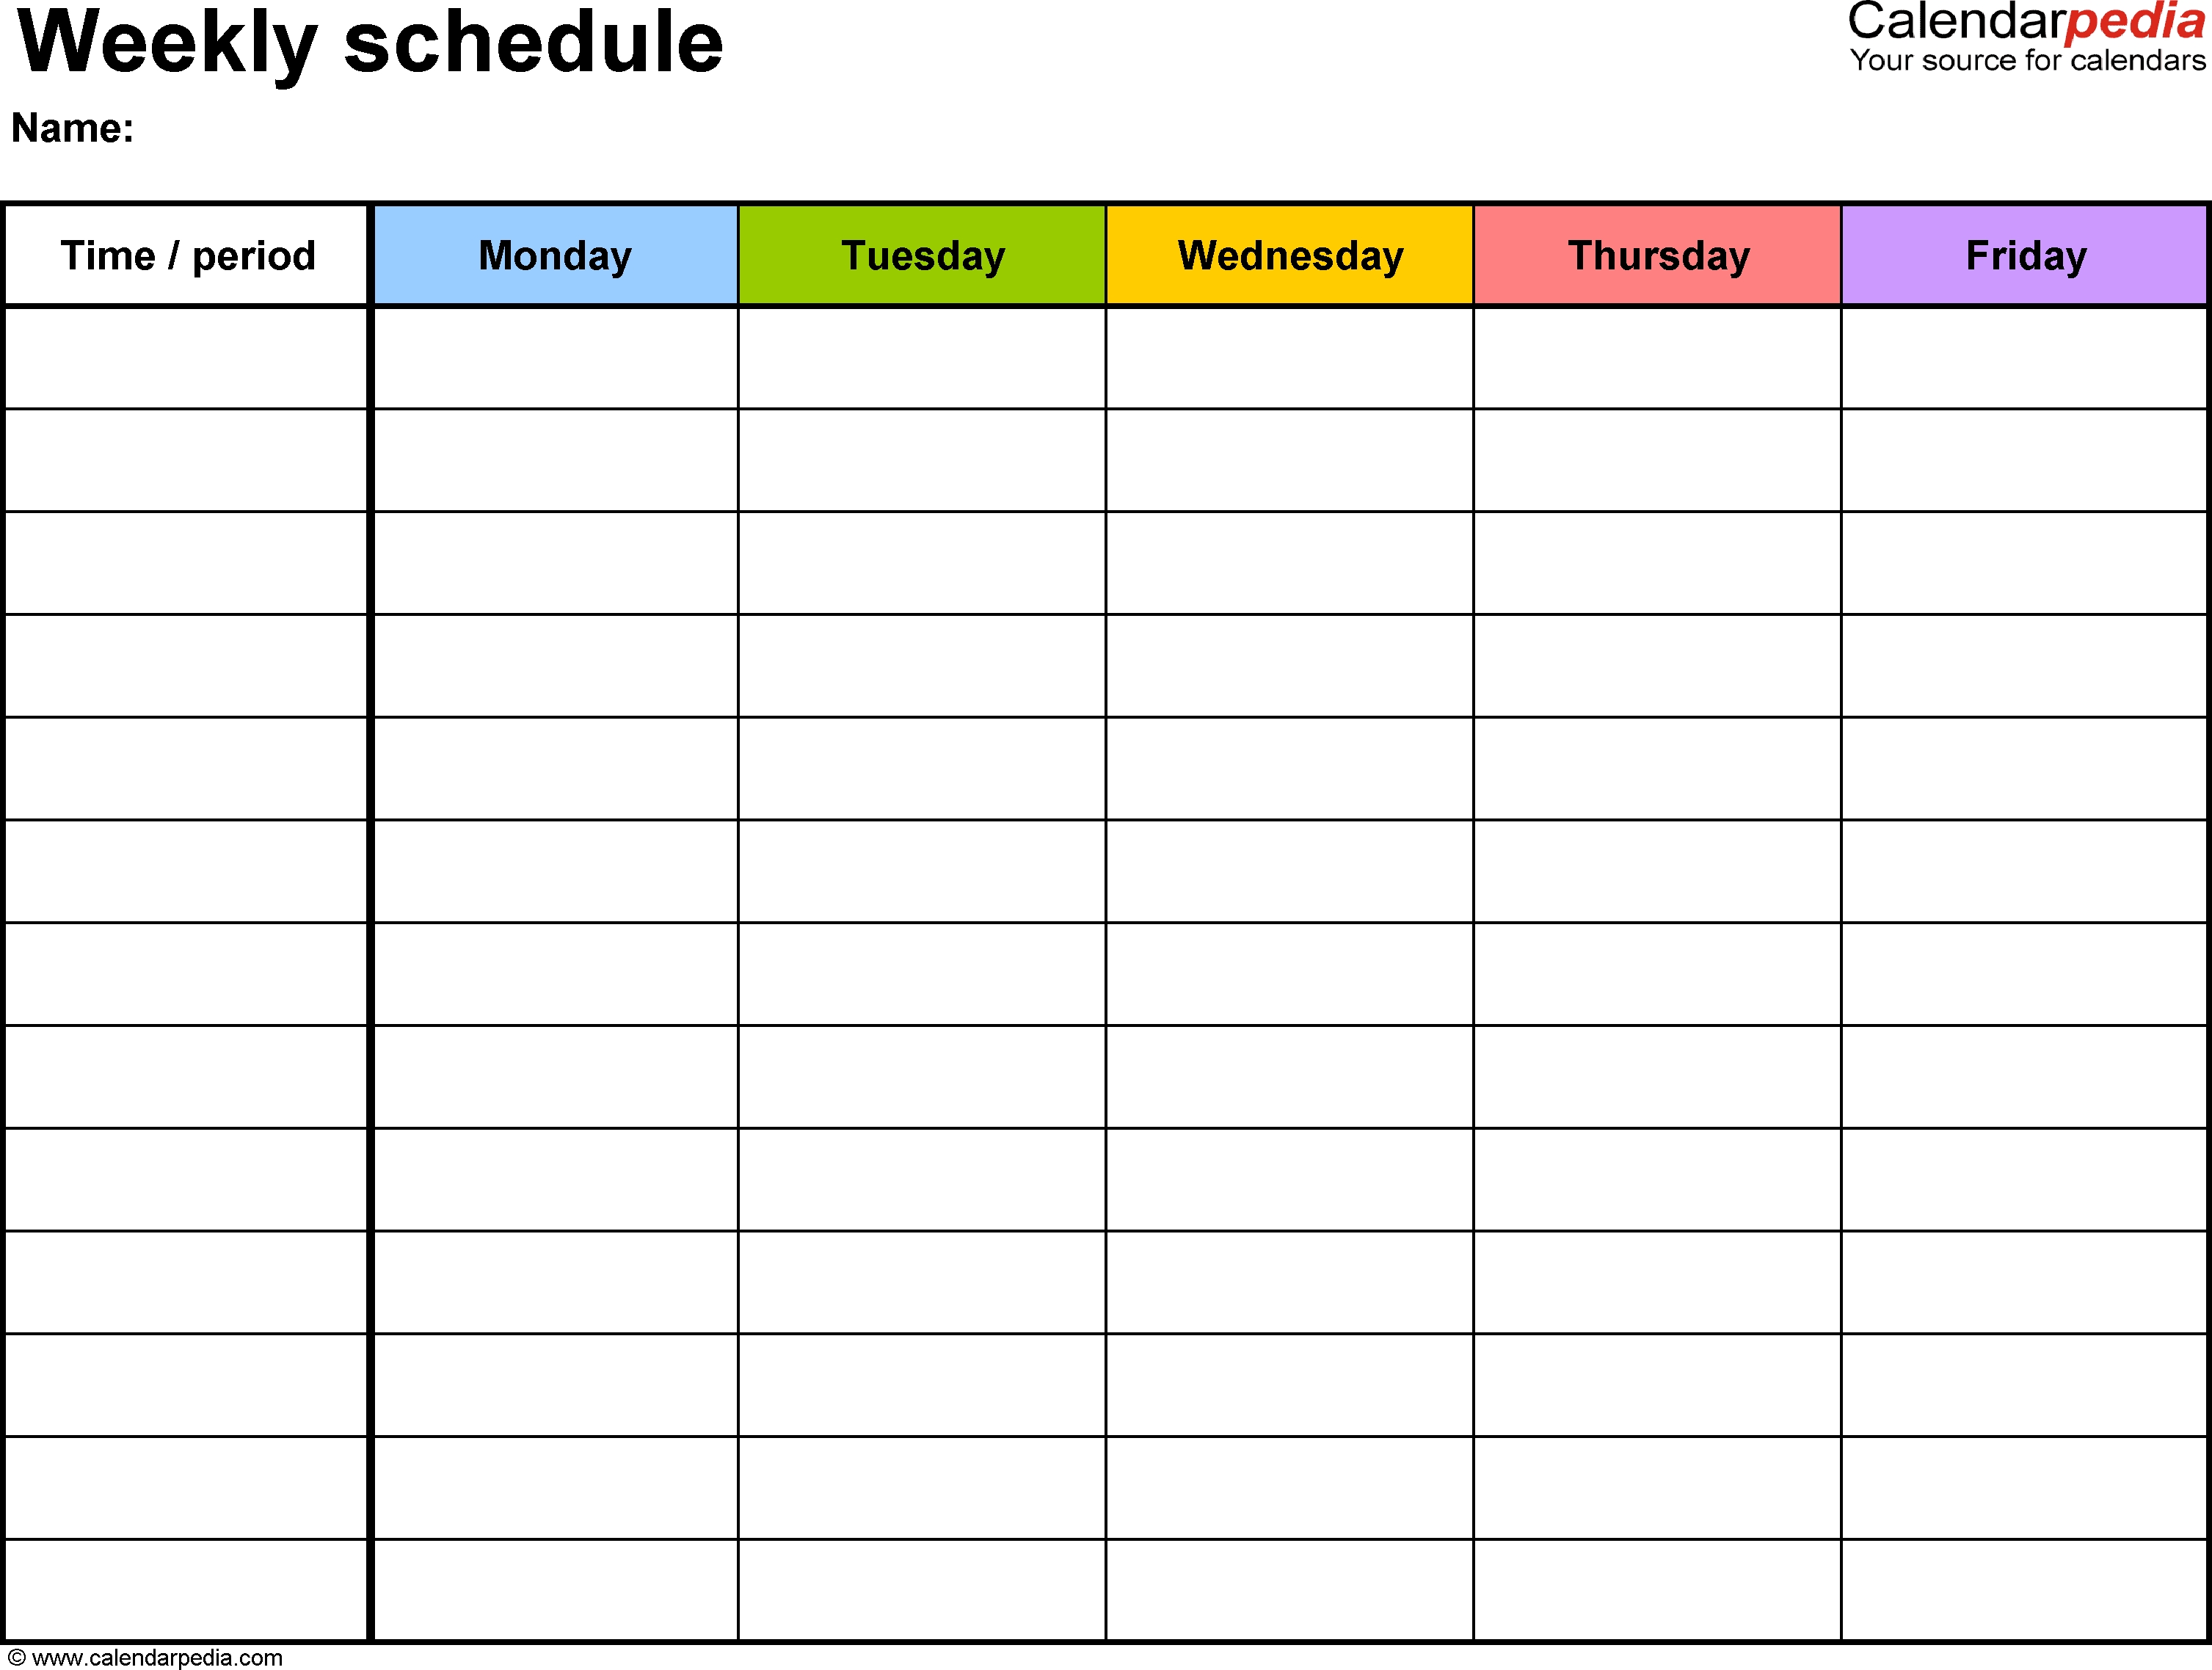 Free Weekly Schedule Templates For Word - 18 Templates inside Blank Printable Weekly Calendars Templates